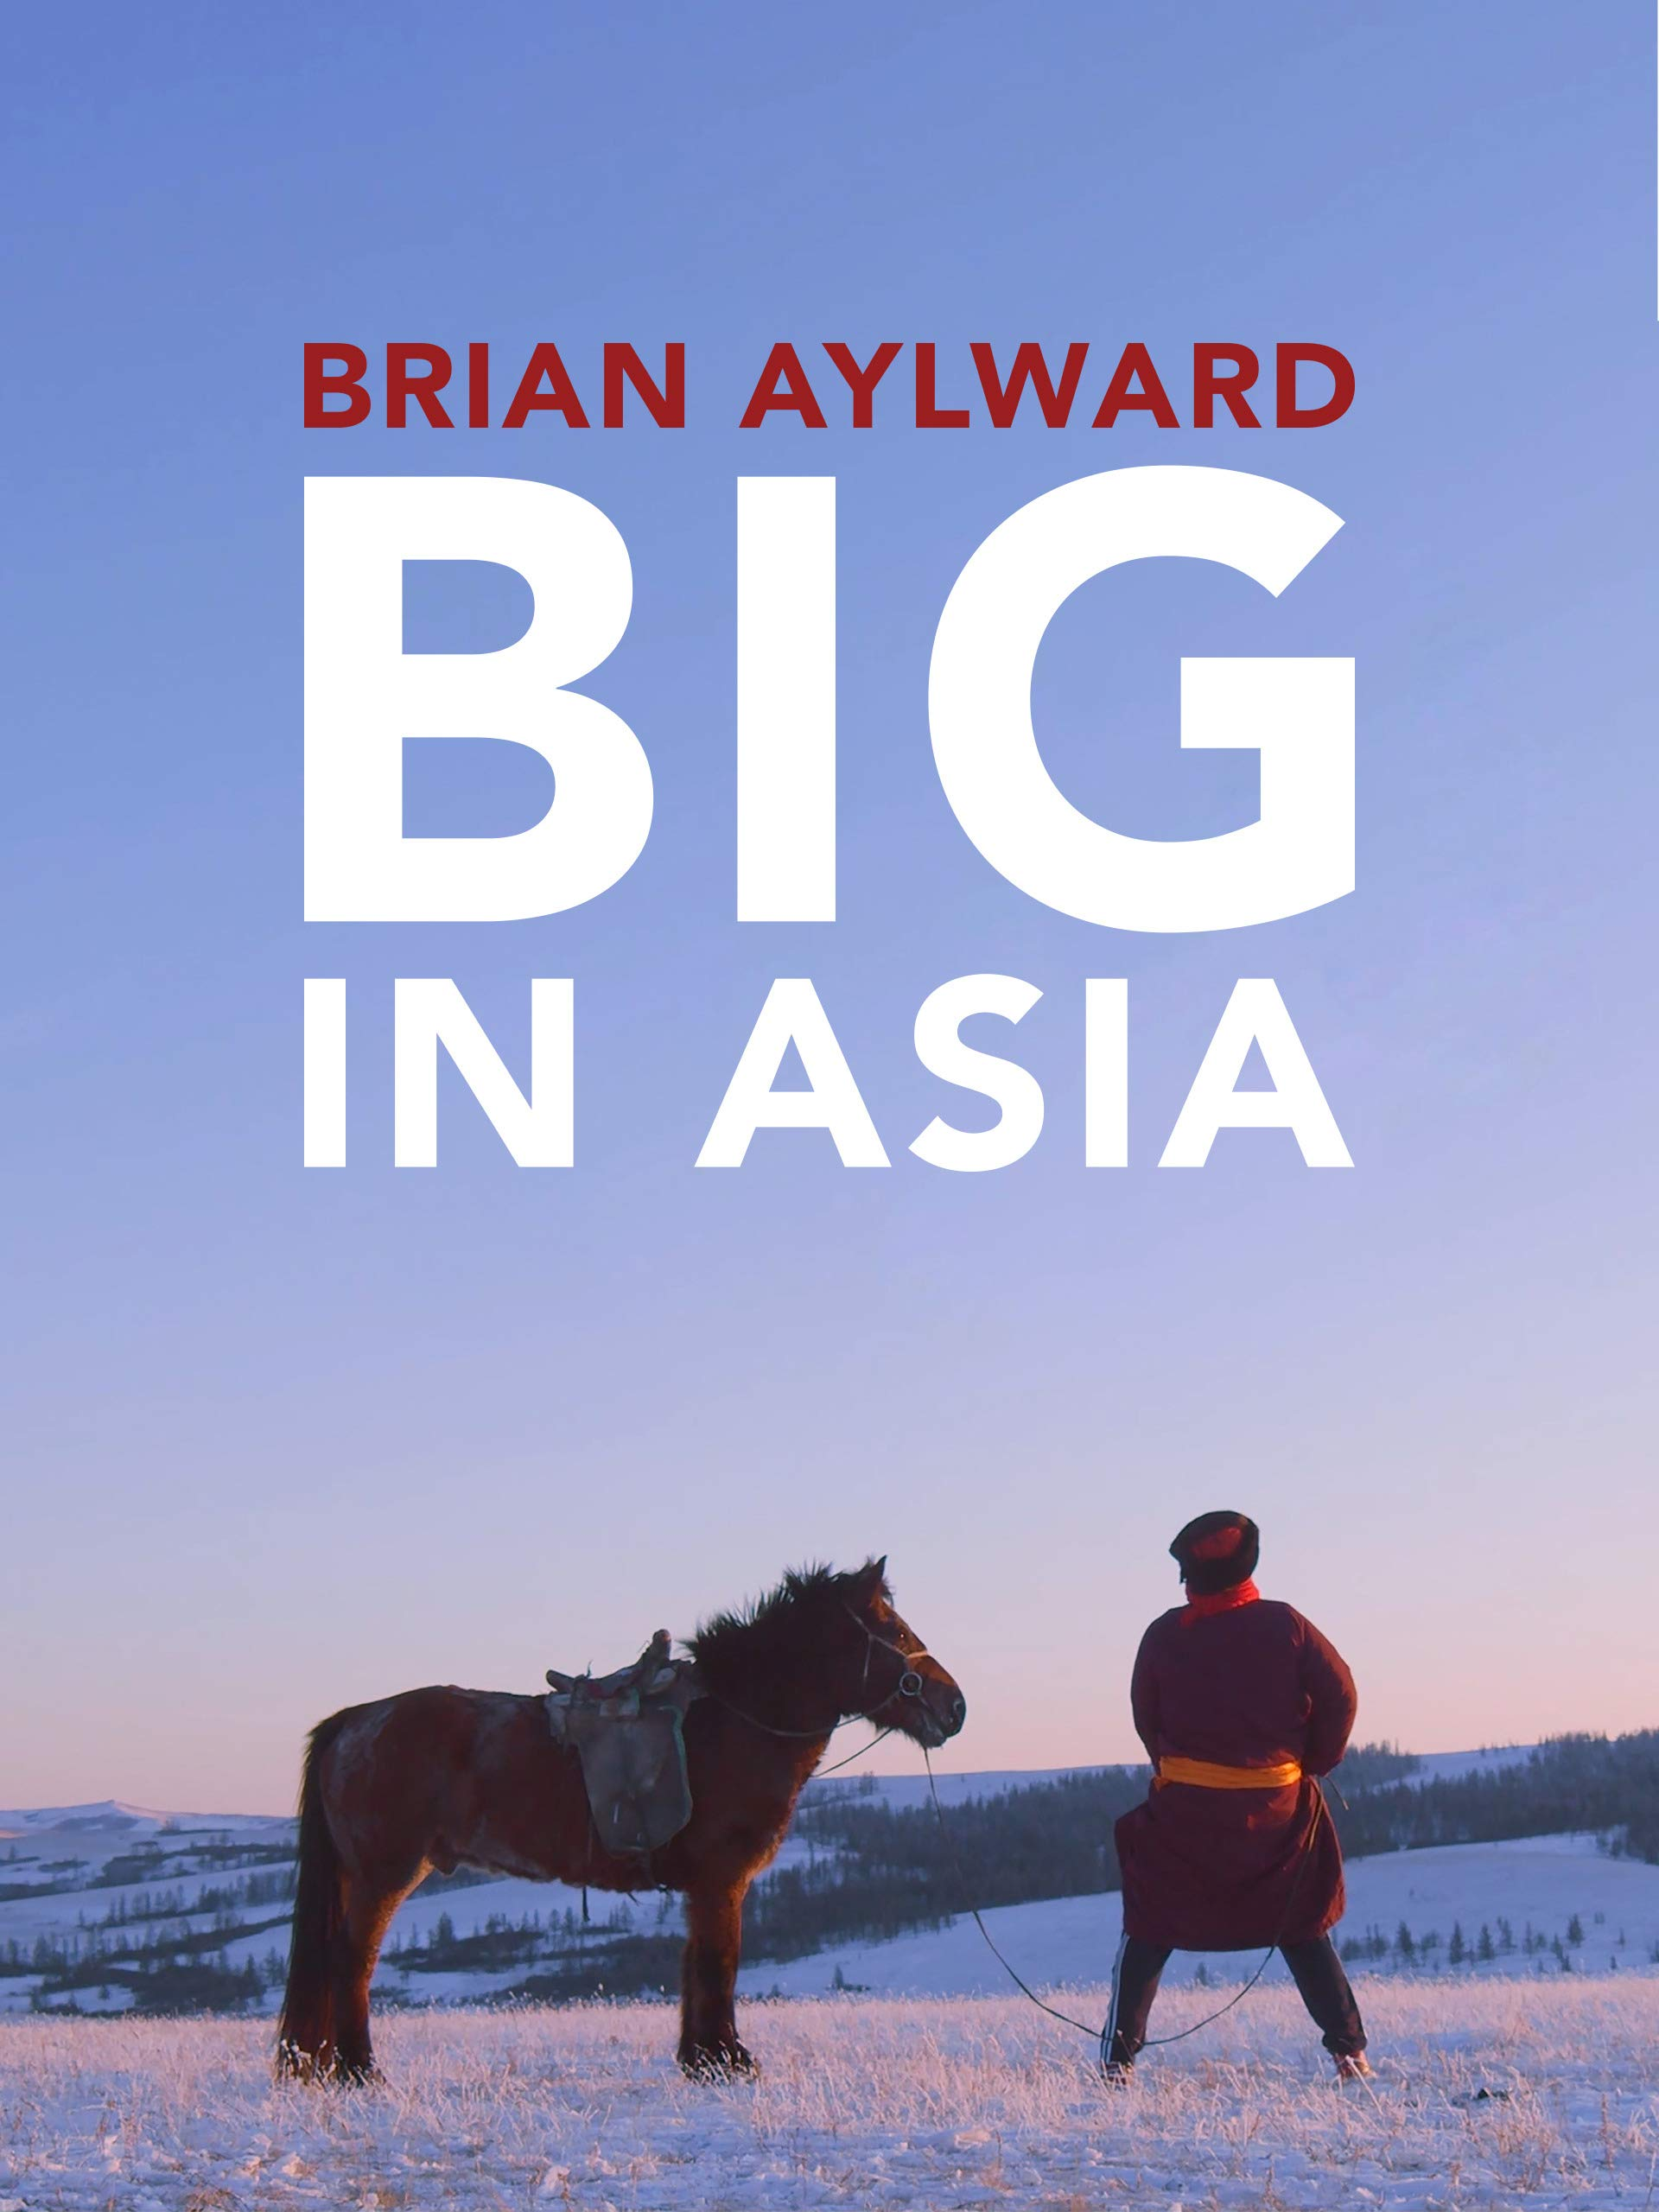 Brian Aylward: Big In Asia